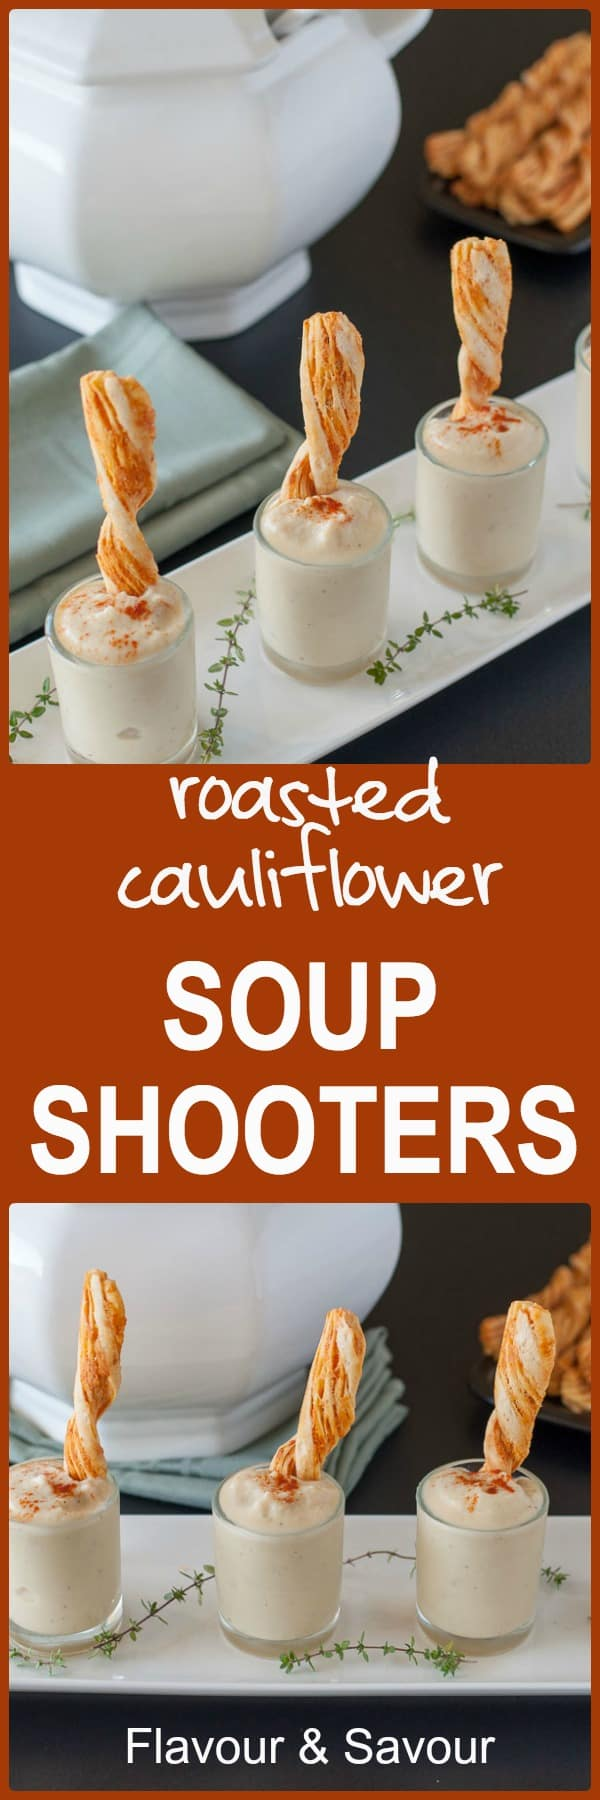 Roasted Cauliflower Soup Shooters, Have fun with your food! Perfect for holiday parties. Creamy cauliflower without the cream. |www.flavourandsavour.com